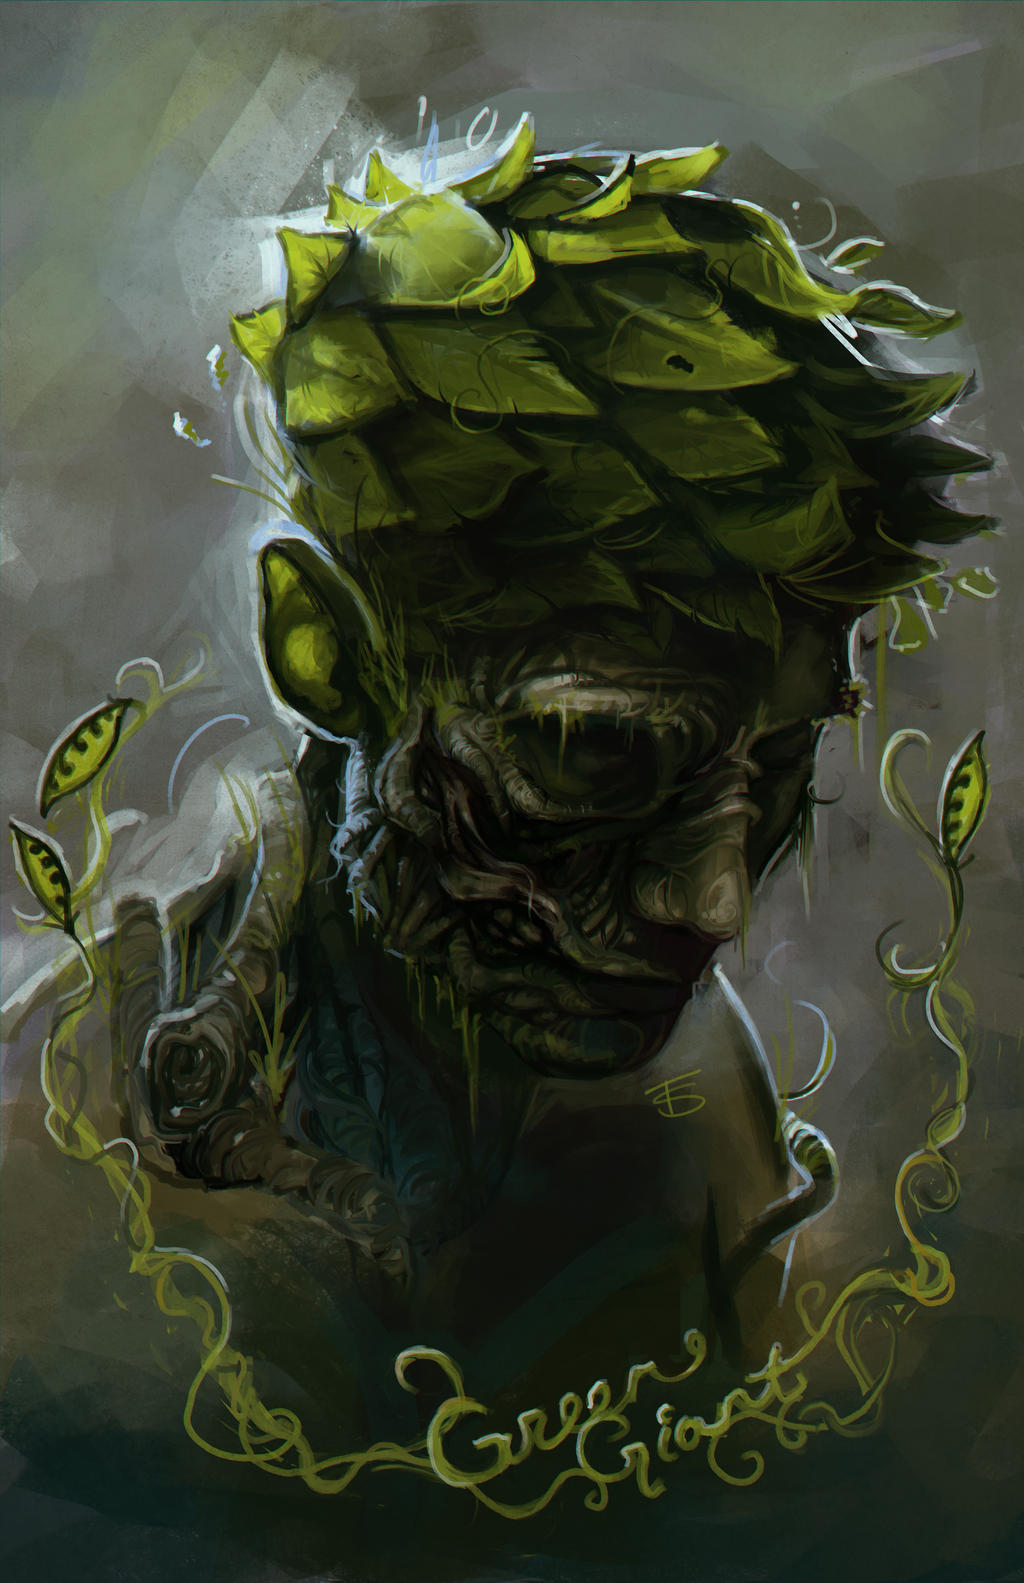 Grotesque - Green Giant by oO-Fotisha-Oo